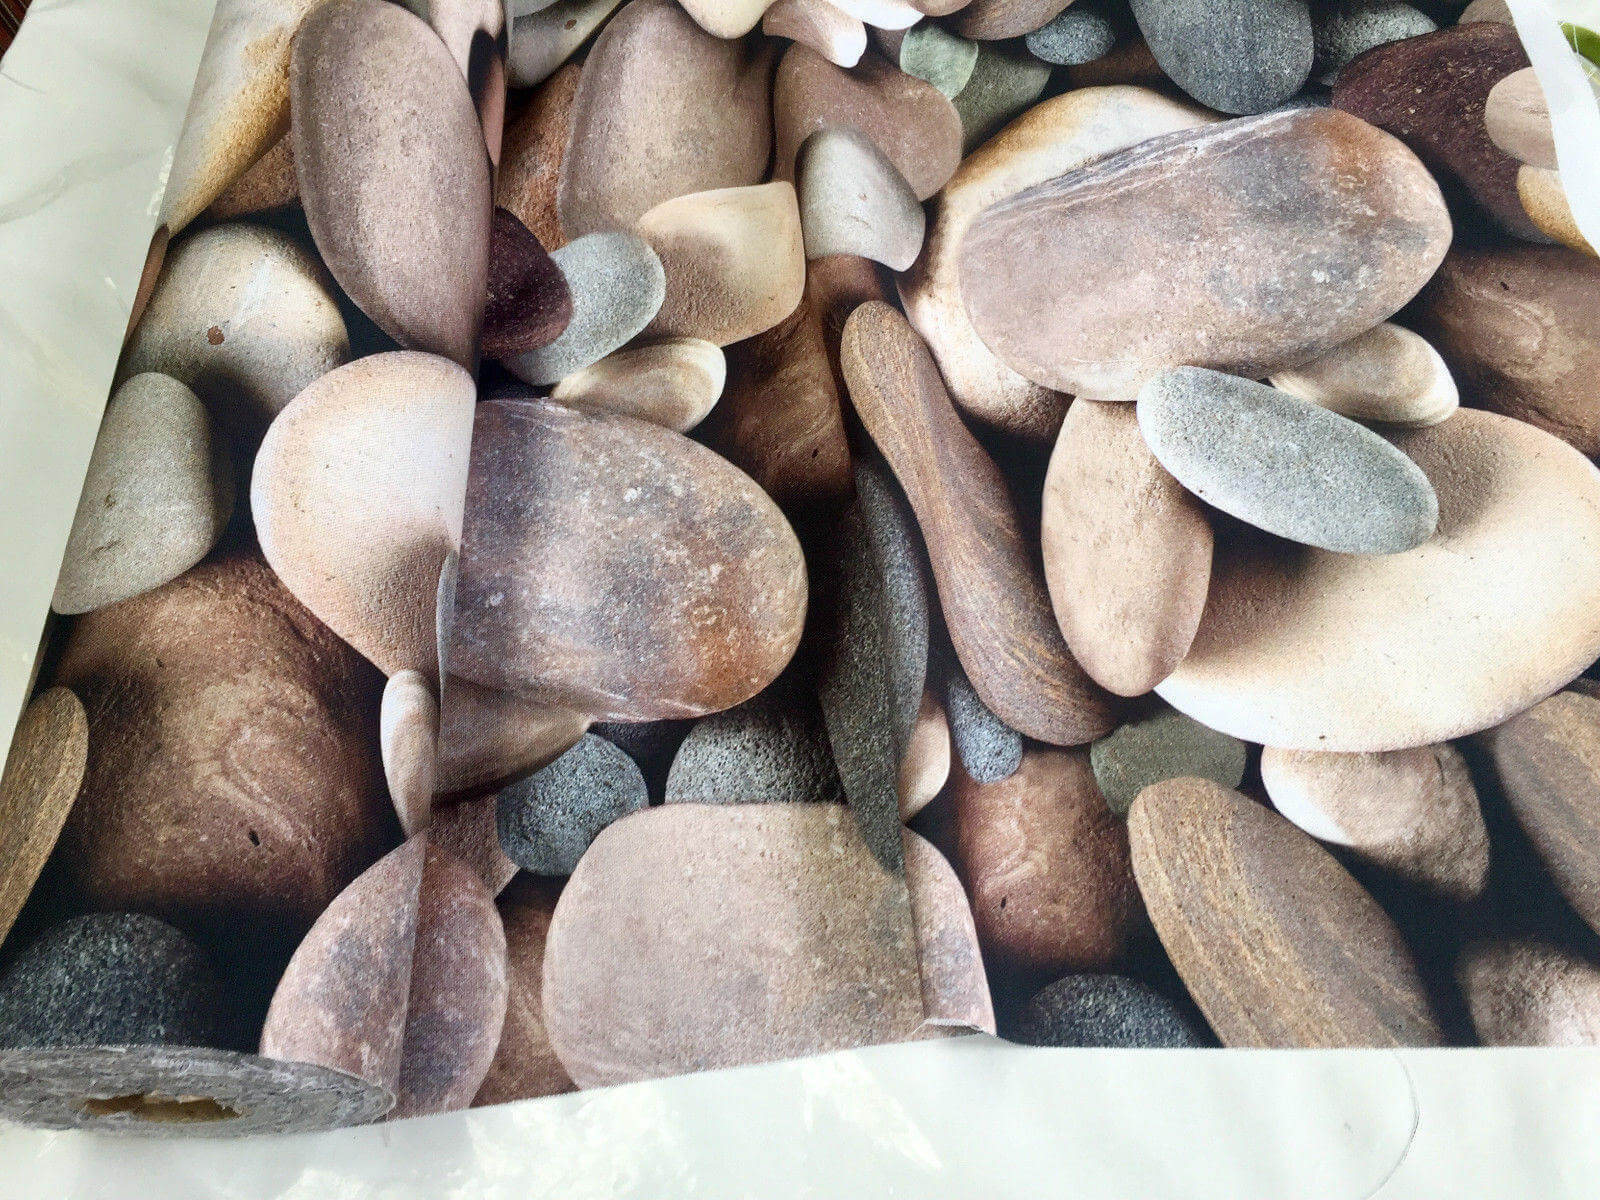 large-stones-beach-pebbles-cotton-fabric-curtain-upholstery-material-280cm-extra-wide-brown-grey-5b87d6071.jpg